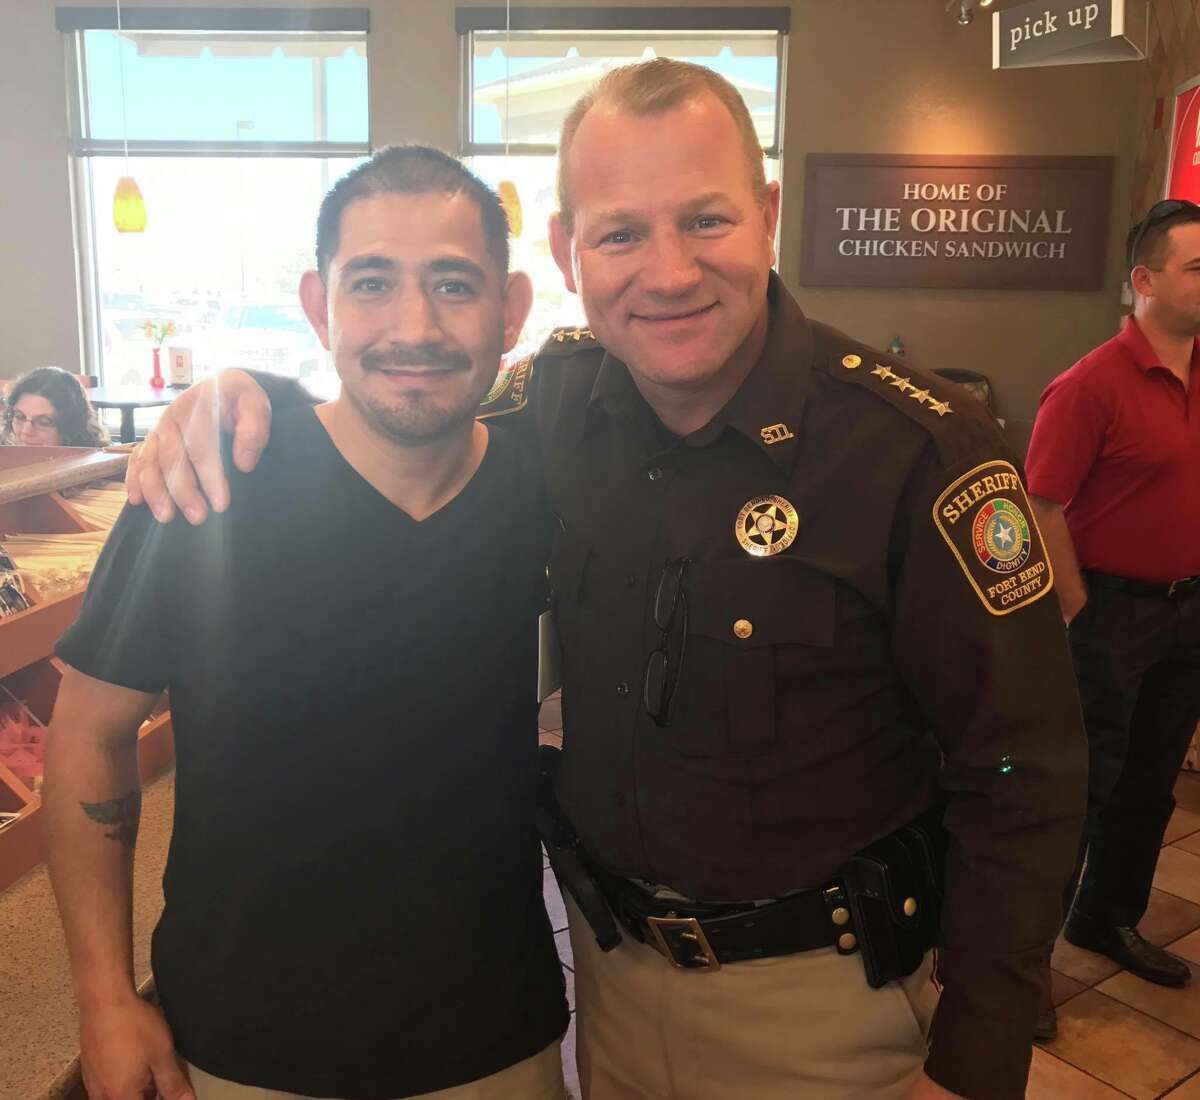 Louis Palacios, left, said he is grateful to Sheriff Troy Nehls, who used the Heimlich maneuver to save Palacios from choking at the Rosenberg Chick-Fil-A on Feb. 22, 2017.